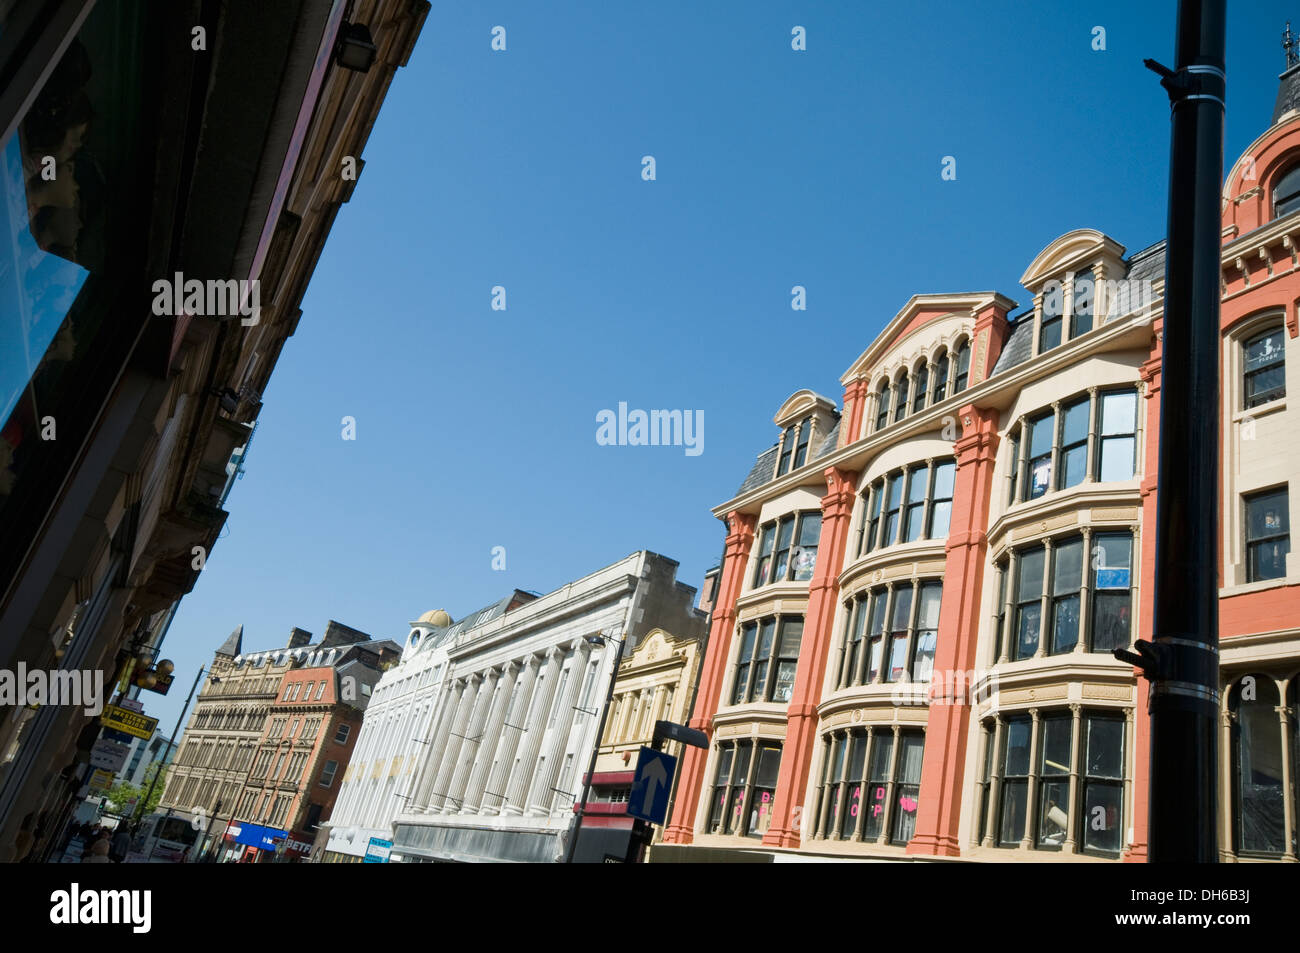 View along Oldham Street in Manchester, England, UK, with Afflecks indoor market on the right - Stock Image